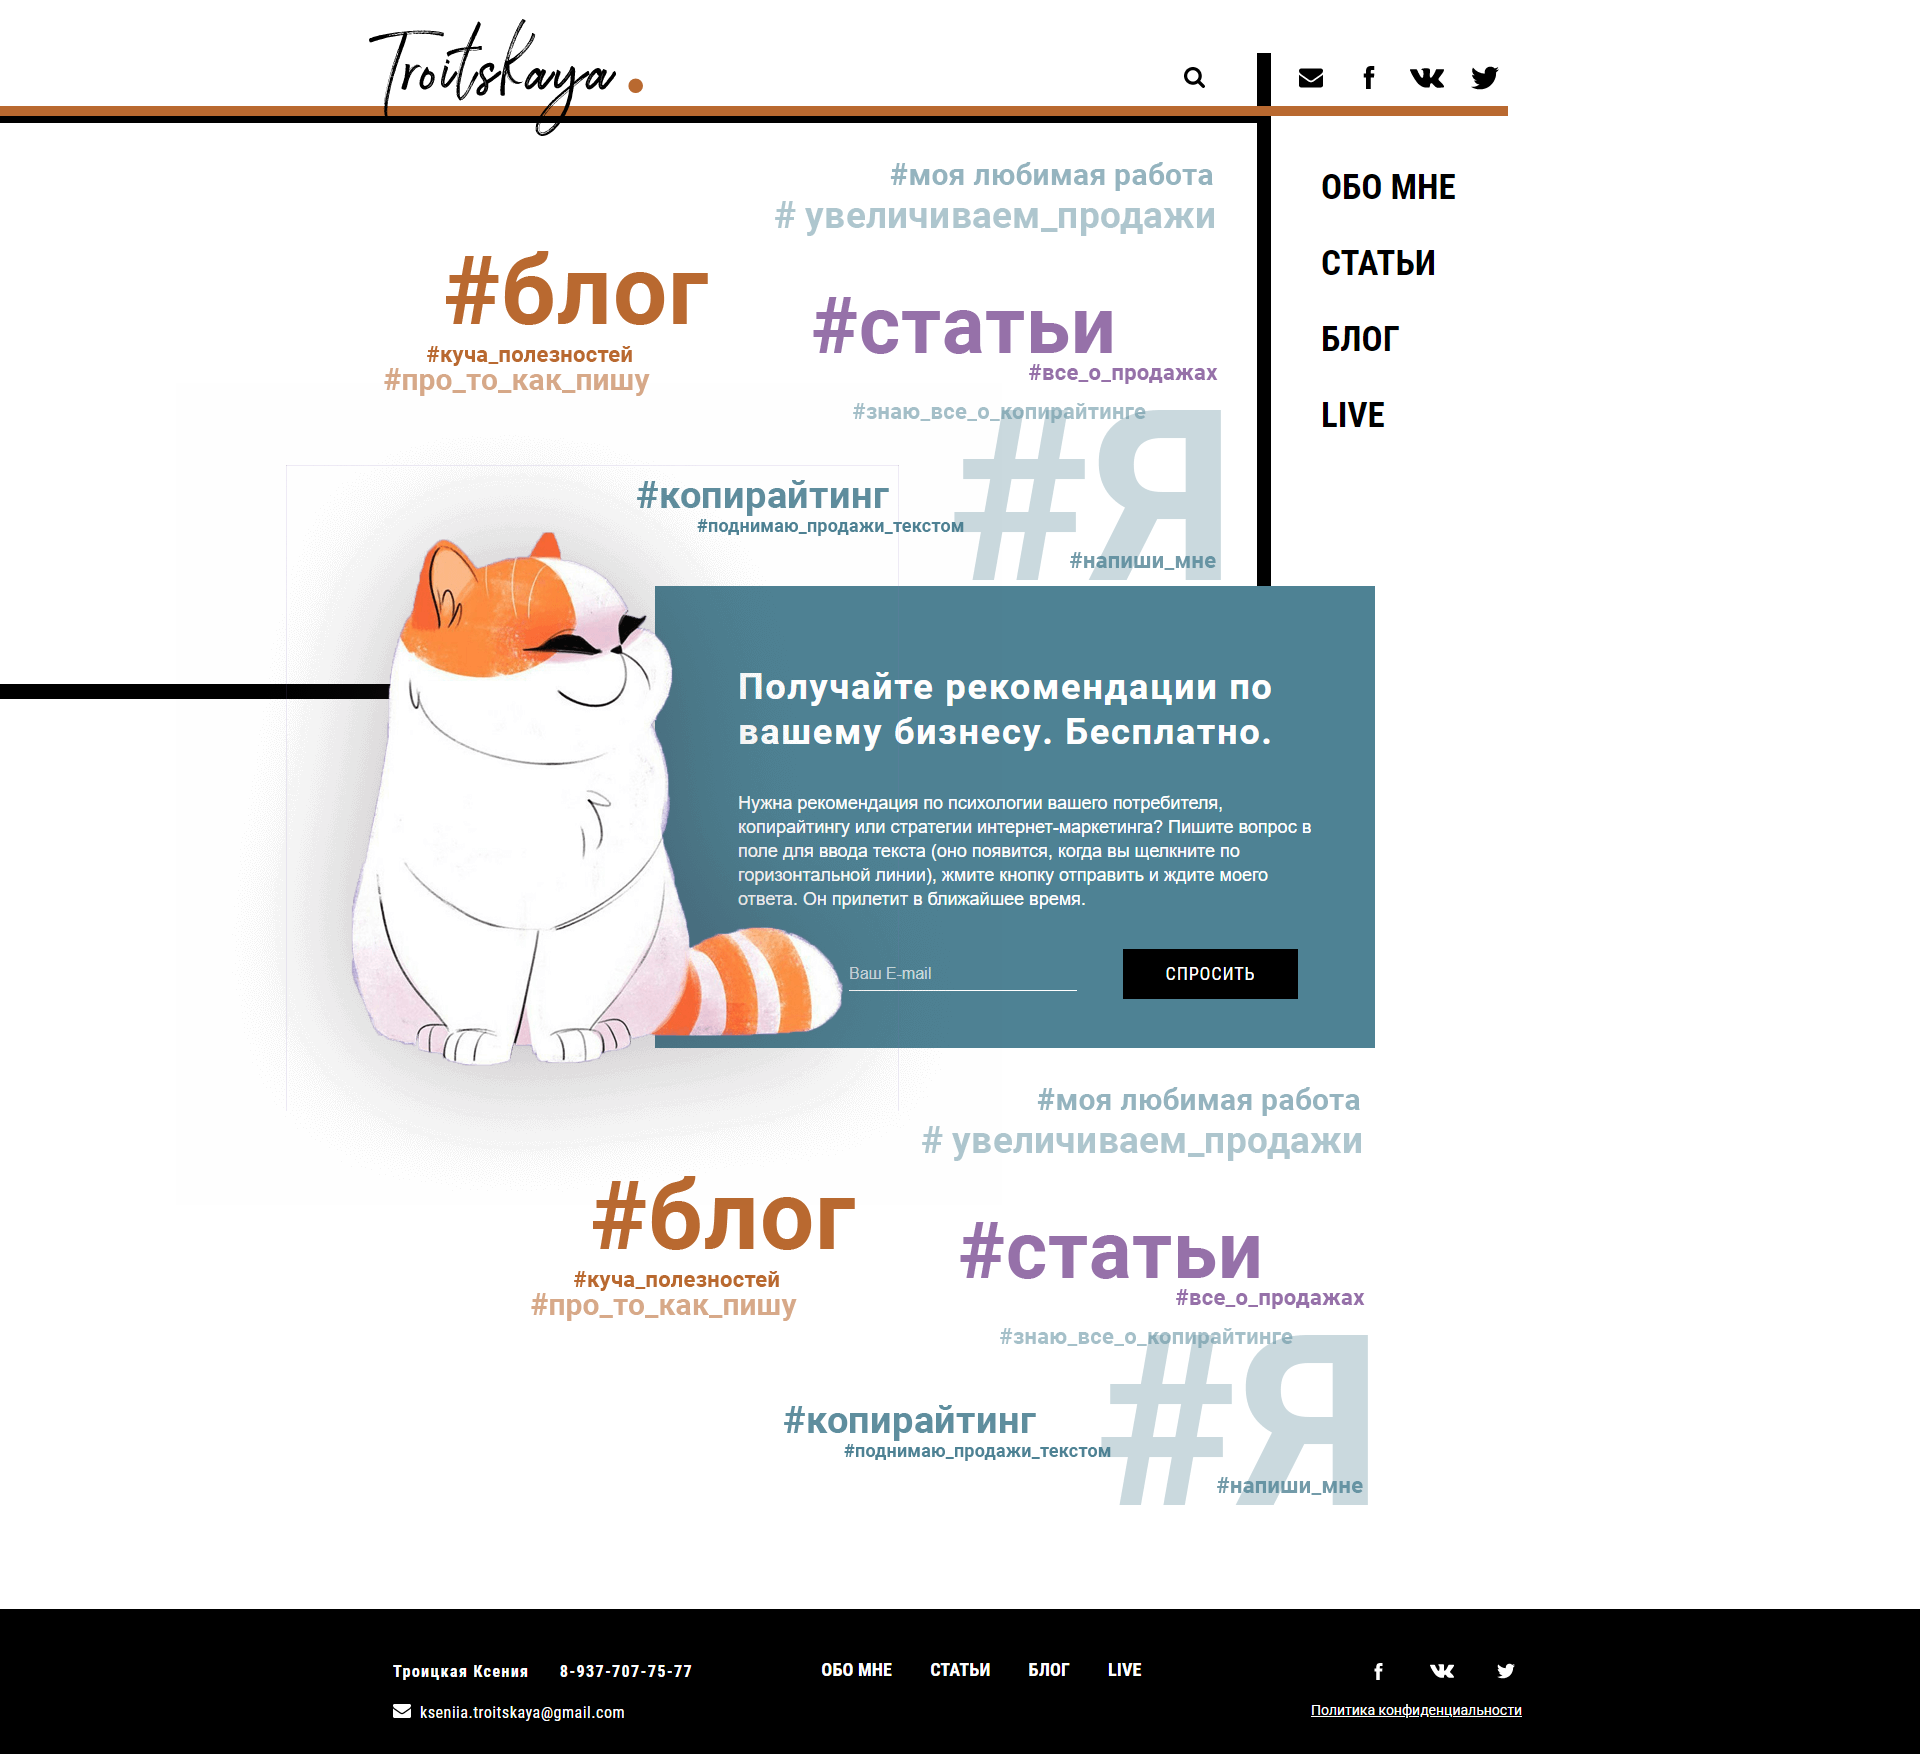 TroitsKaya (WordPress)